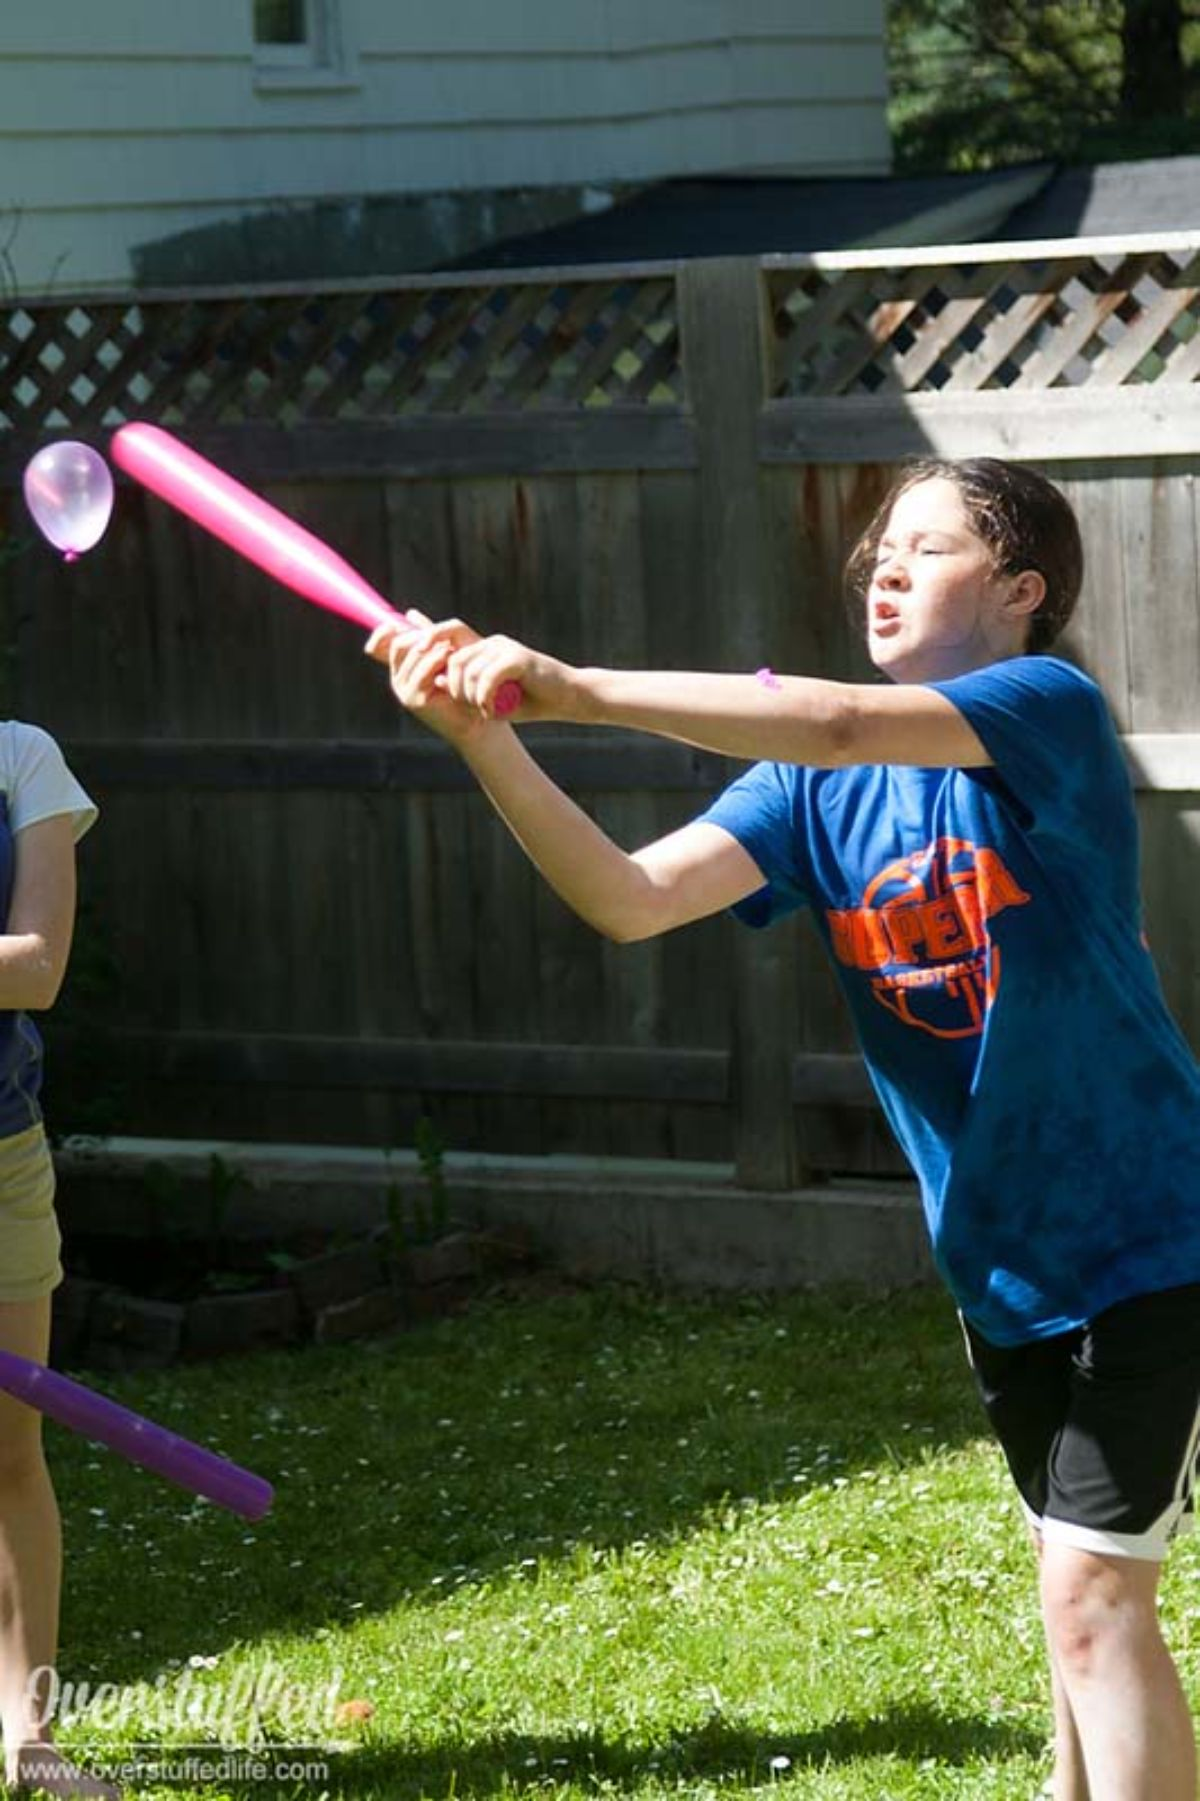 a girl in a blue shirt and shorts is hitting a water balloon with a pink bat in a garden